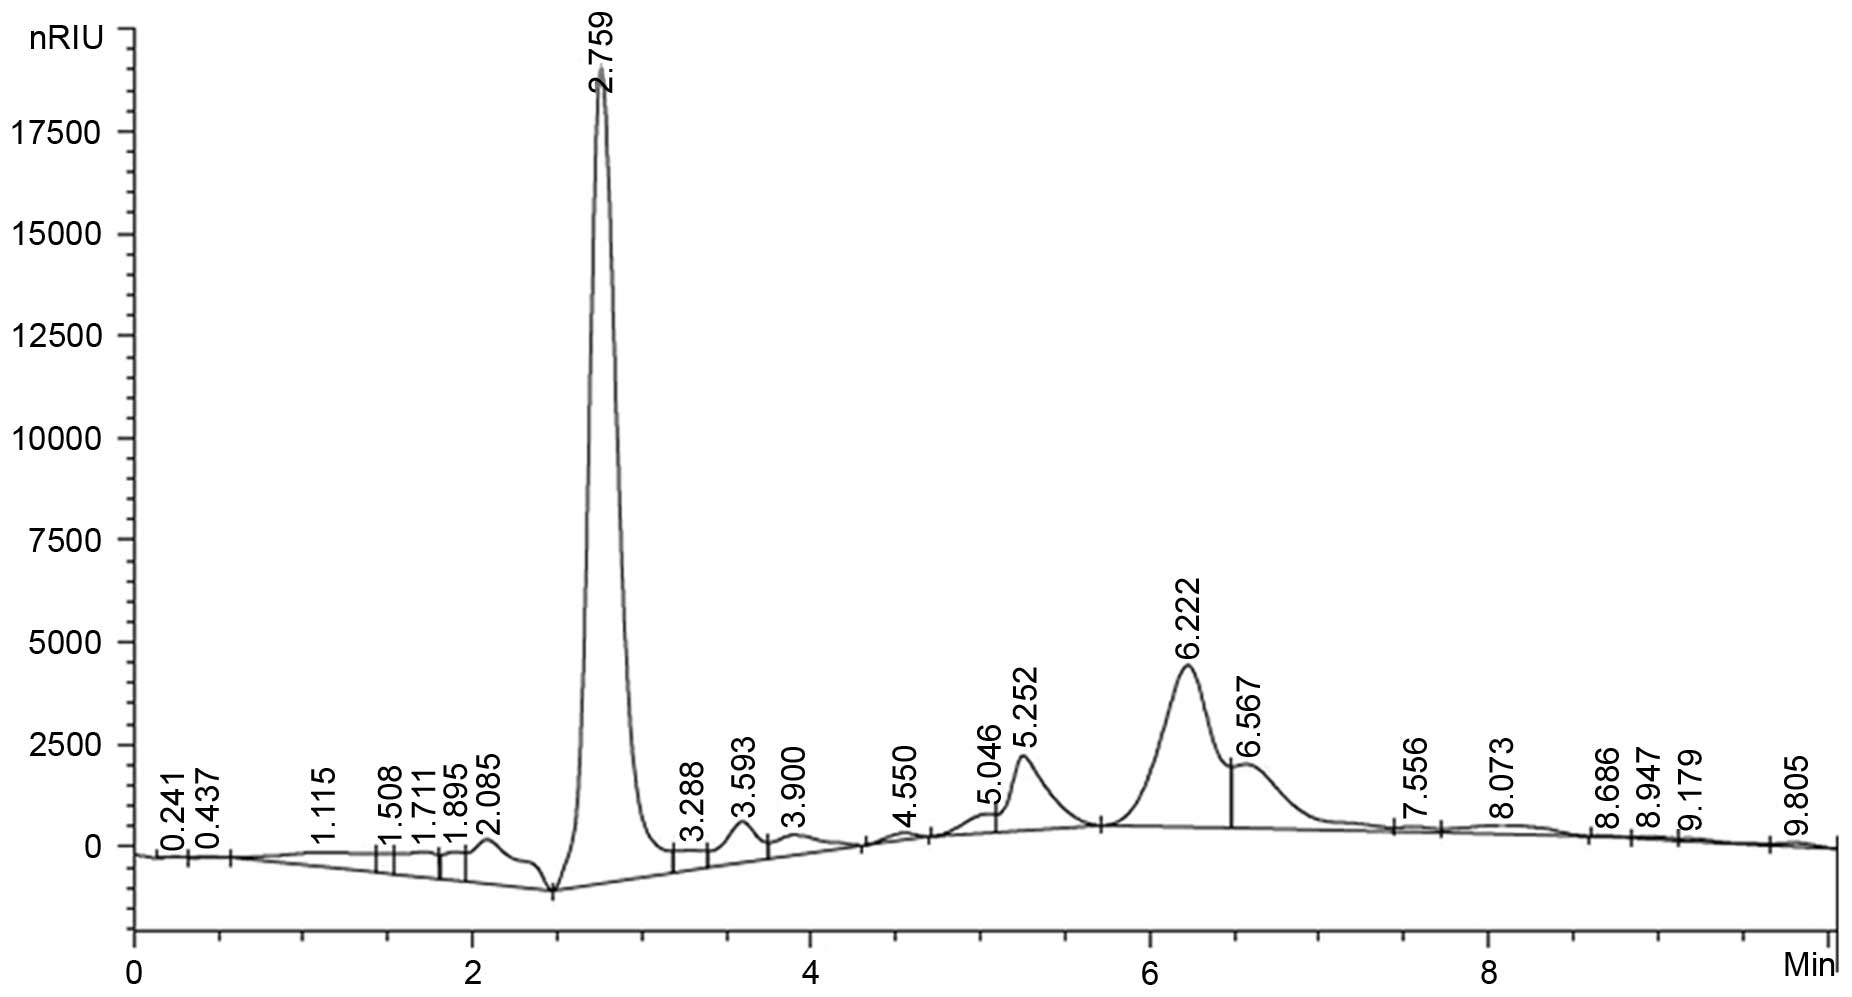 Figure 2 Component Monosaccharide Analysis Of Polysaccharides By High Performance Liquid Chromatography